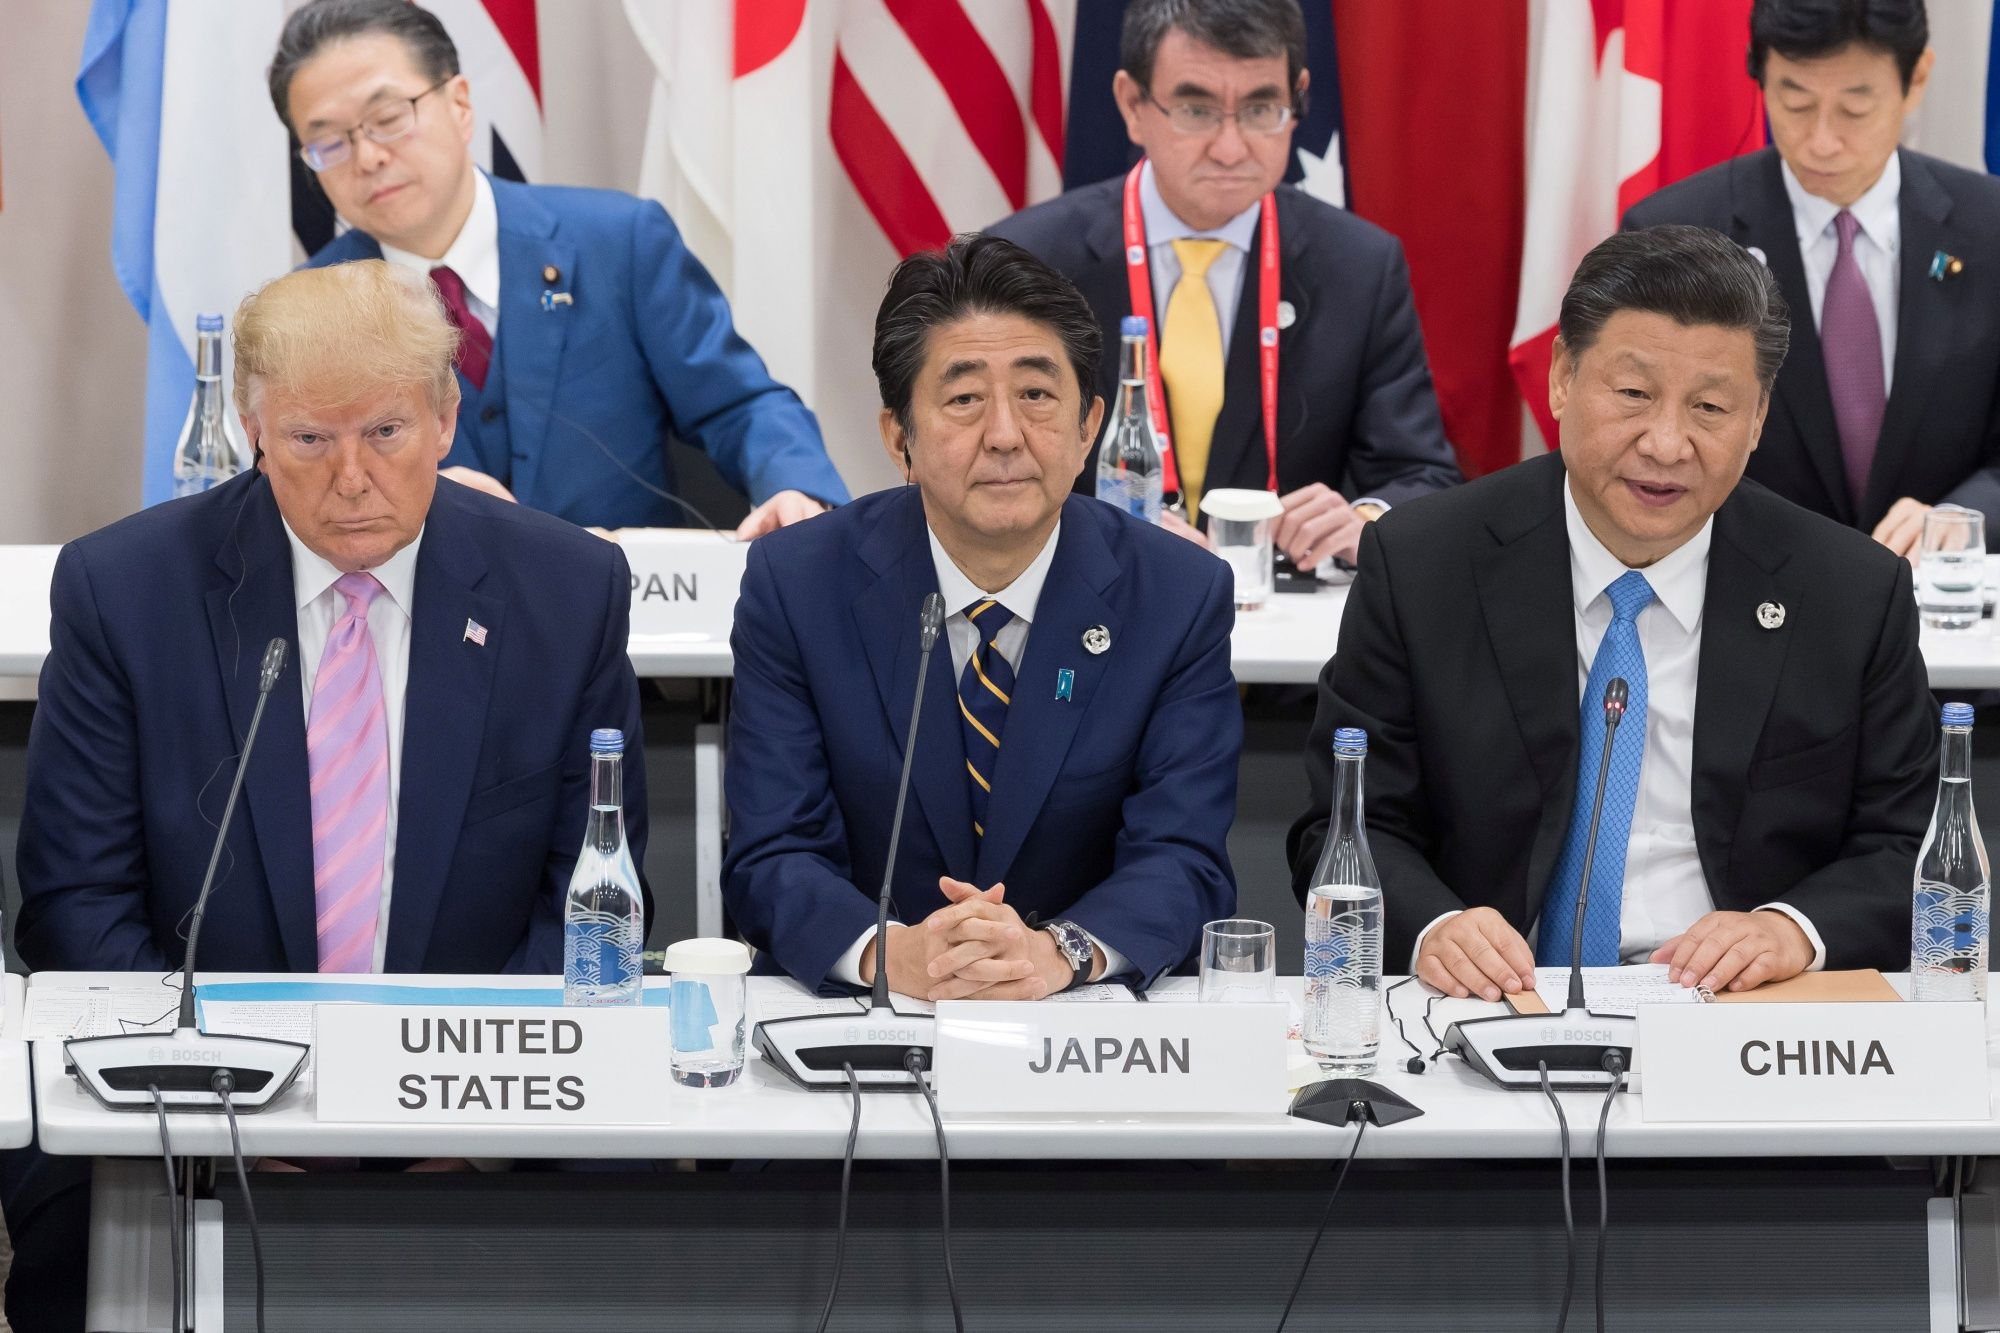 US President Donald Trump (L) sits with Japan's Prime Minister Shinzo Abe (C) and China's President Xi Jinping as they attend a meeting on the digital economy at the G20 Summit in Osaka on June 28, 2019.